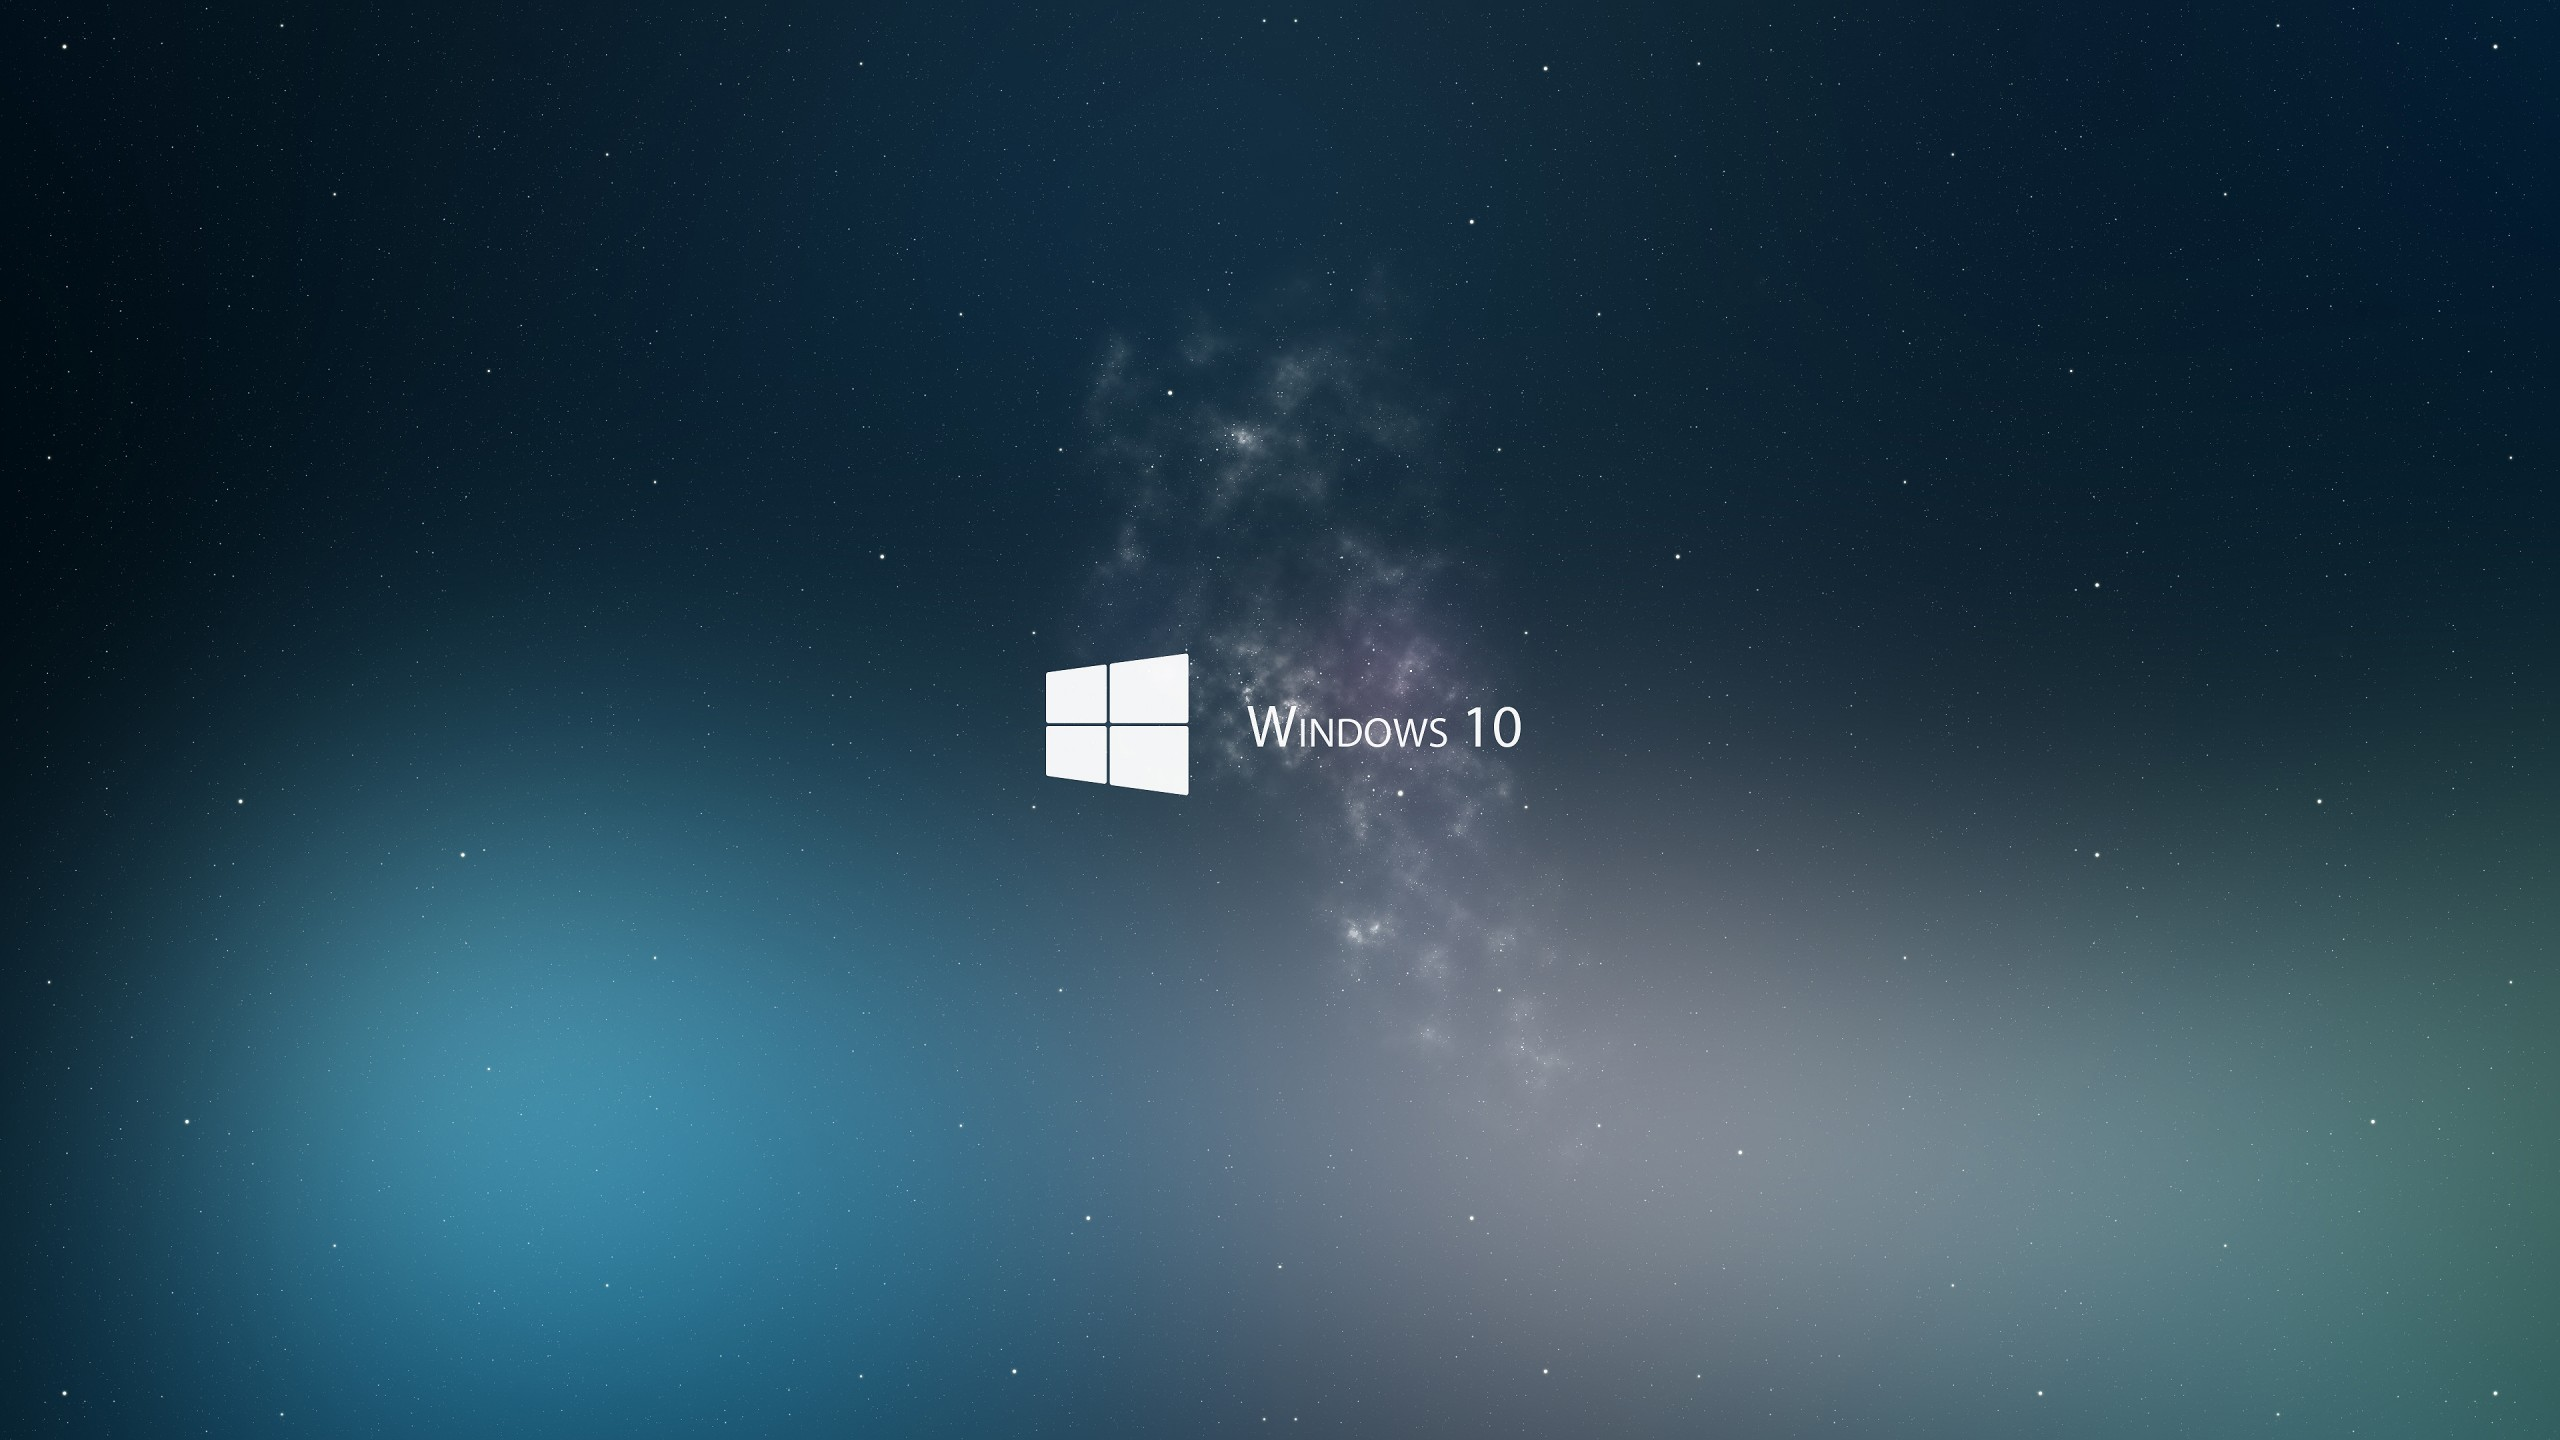 Download Windows 10 HD wallpaper for 2560 x 1440   HDwallpapersnet 2560x1440